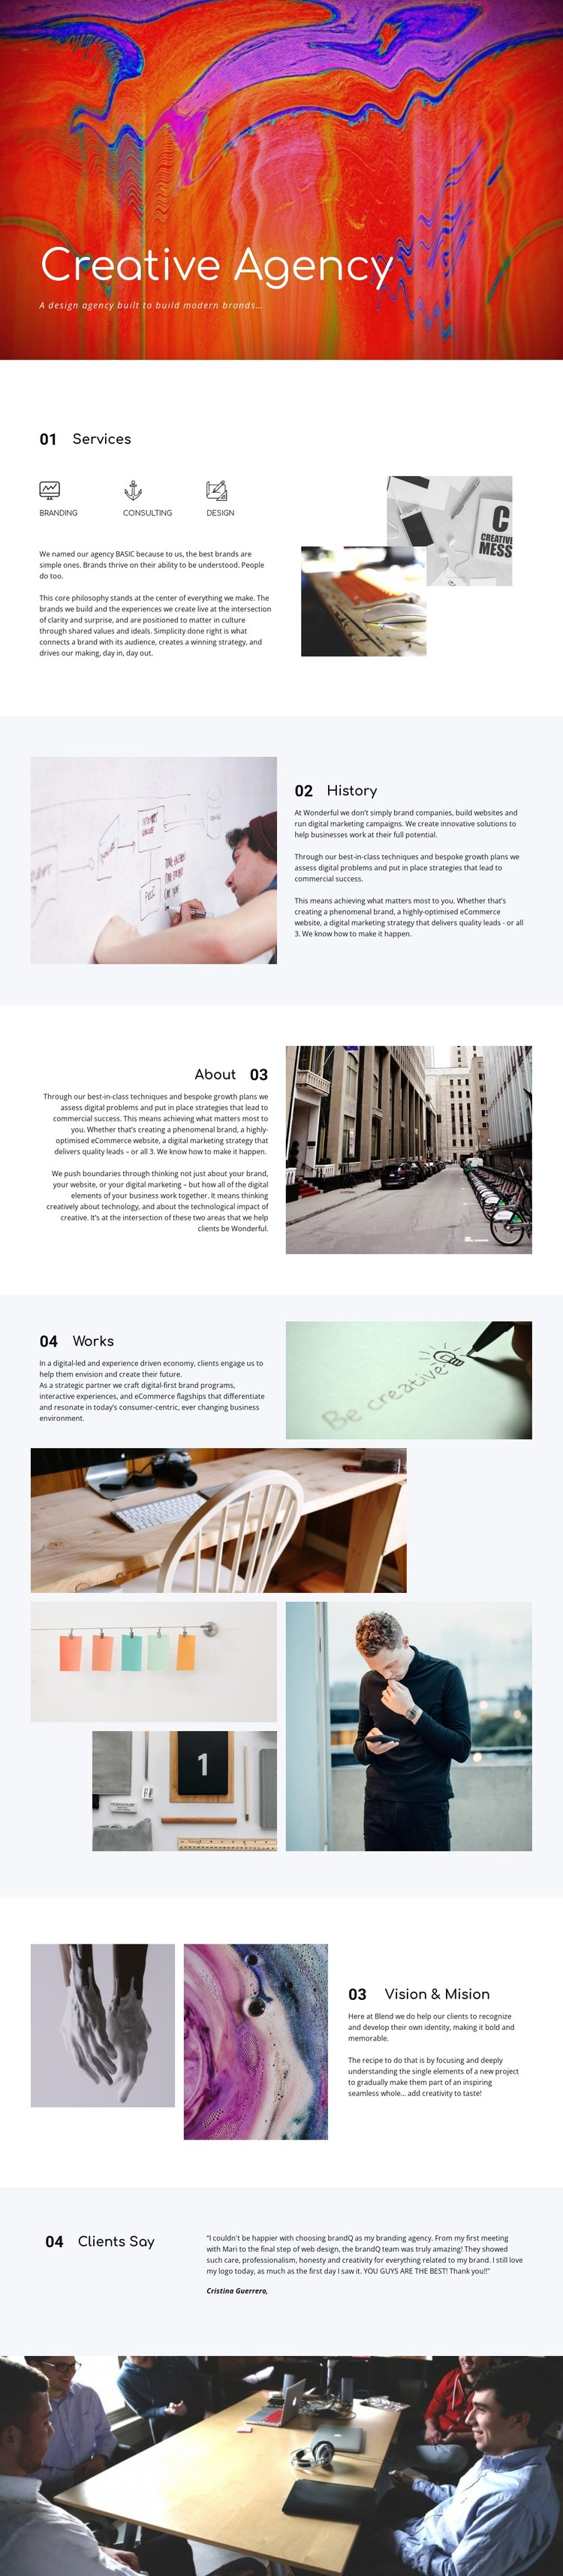 Creative gallery CSS Template